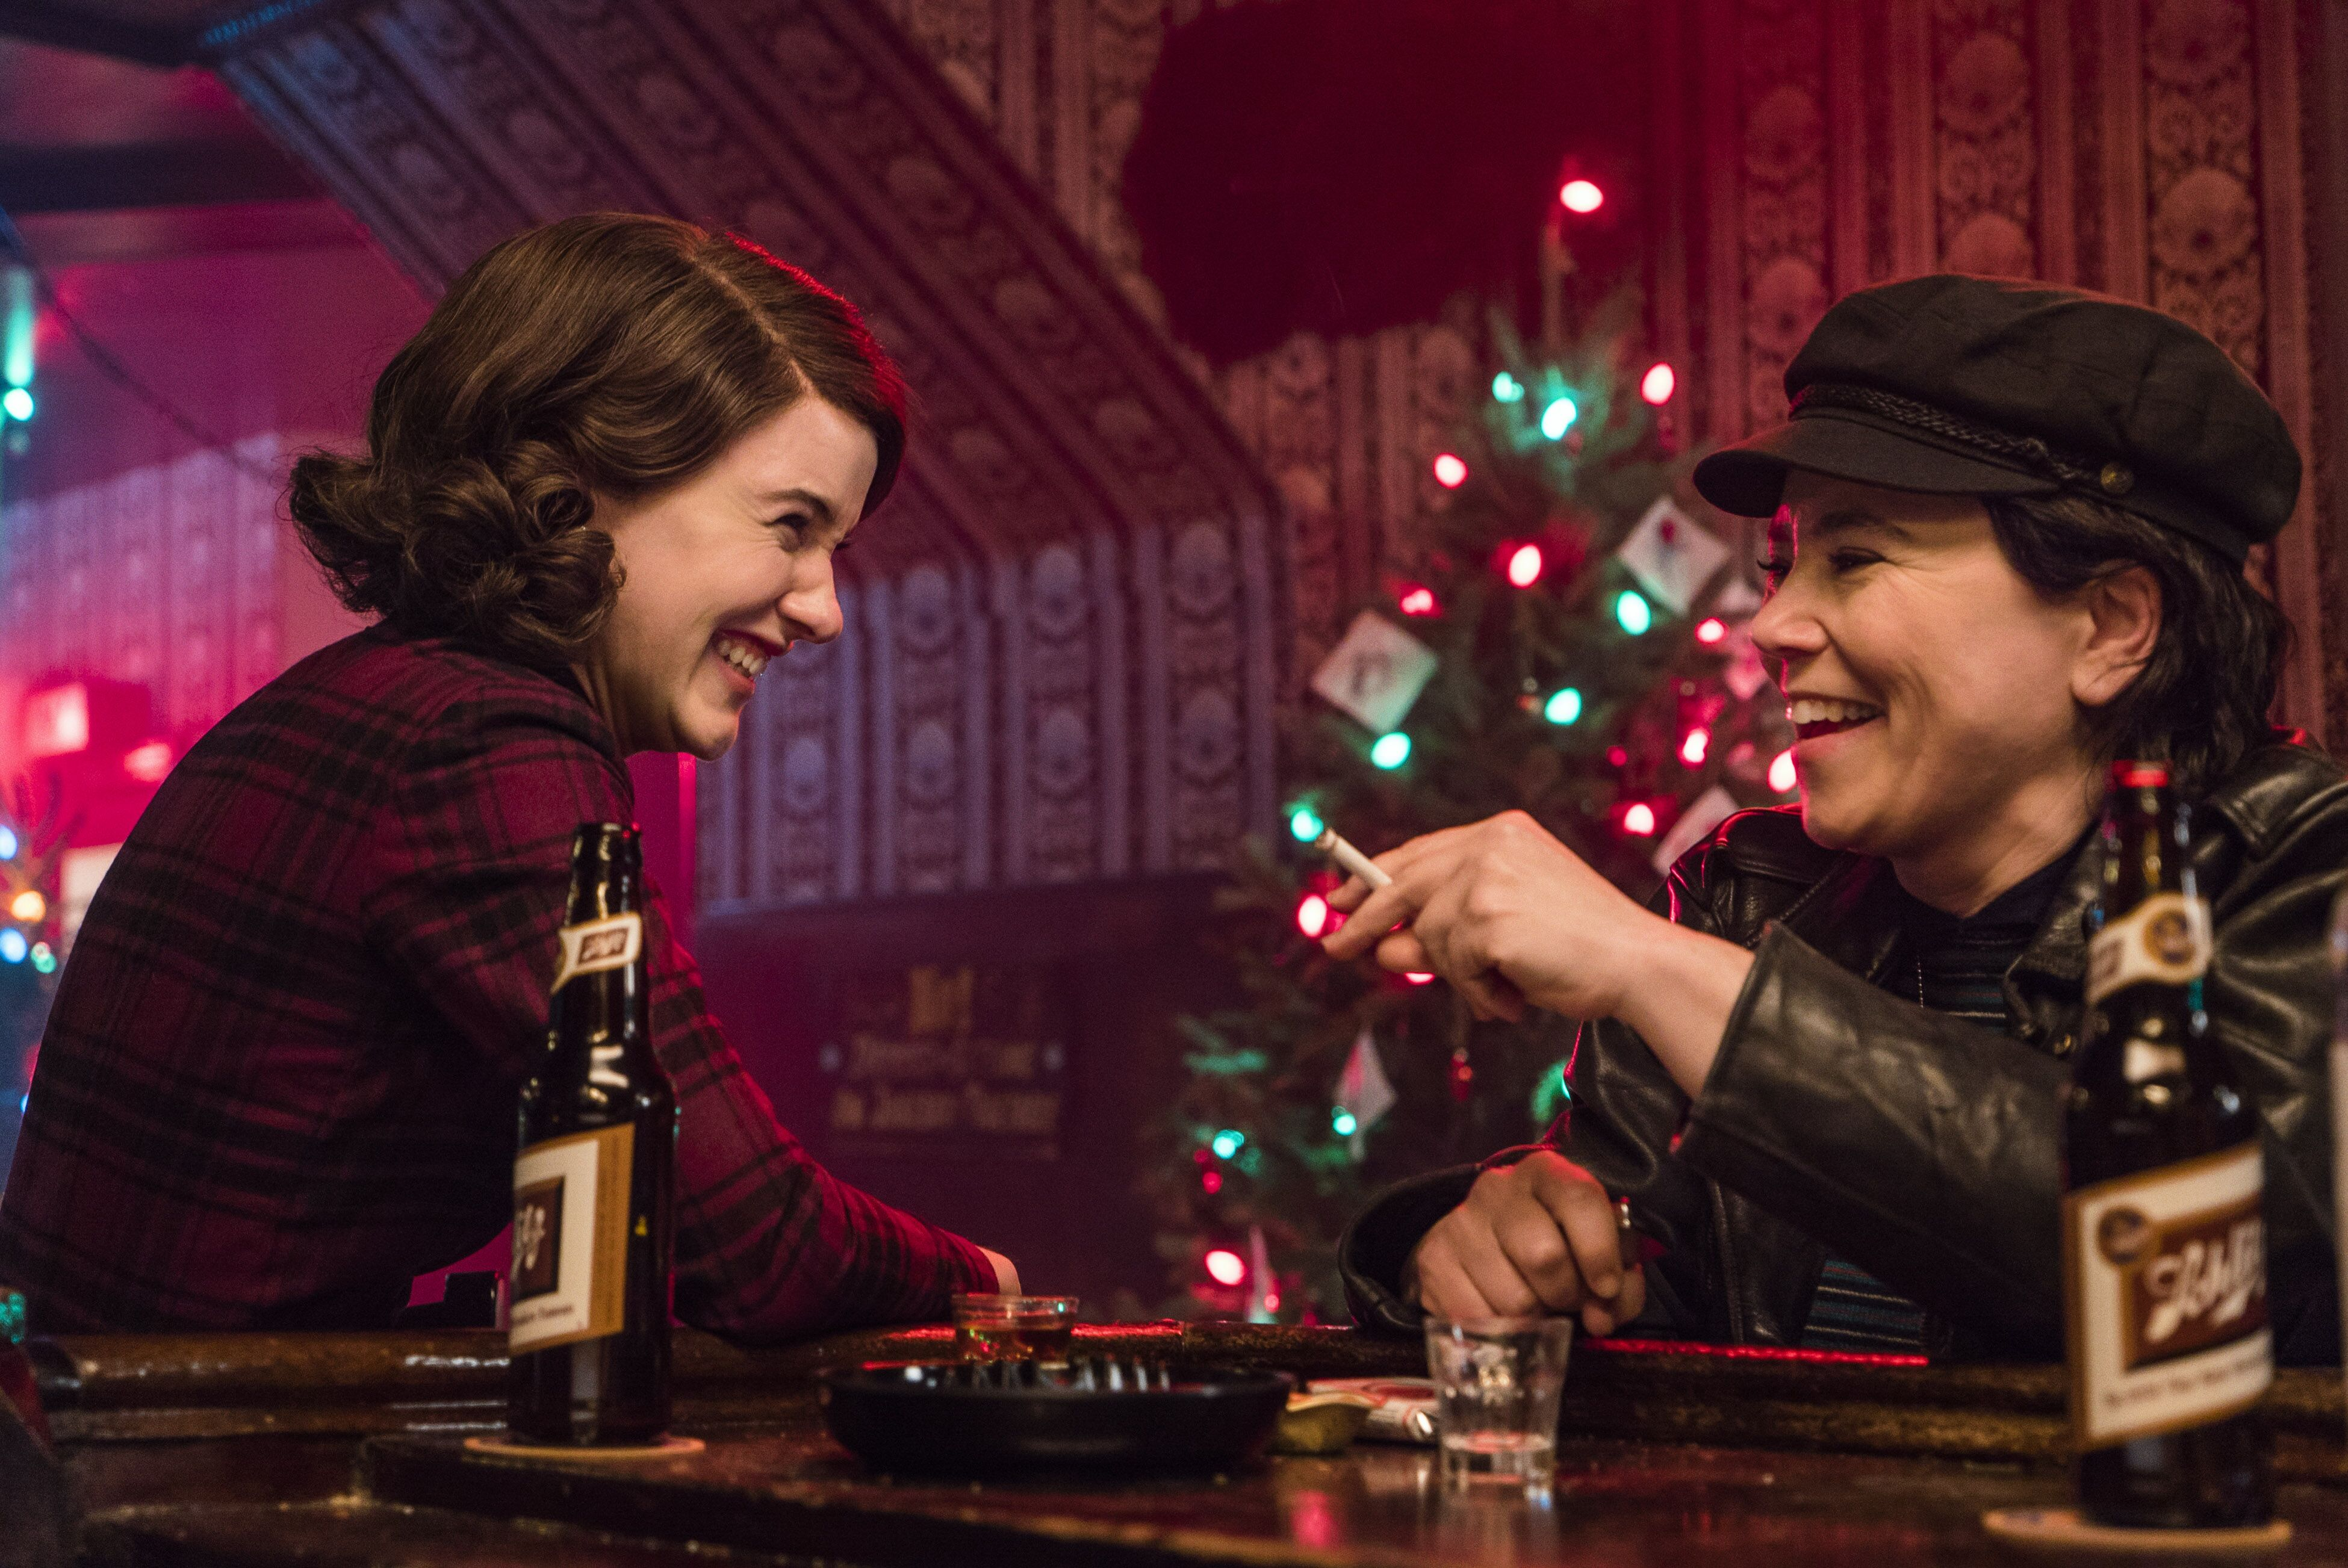 50 best comedies on Amazon Prime: Mrs. Maisel finally gets a spot